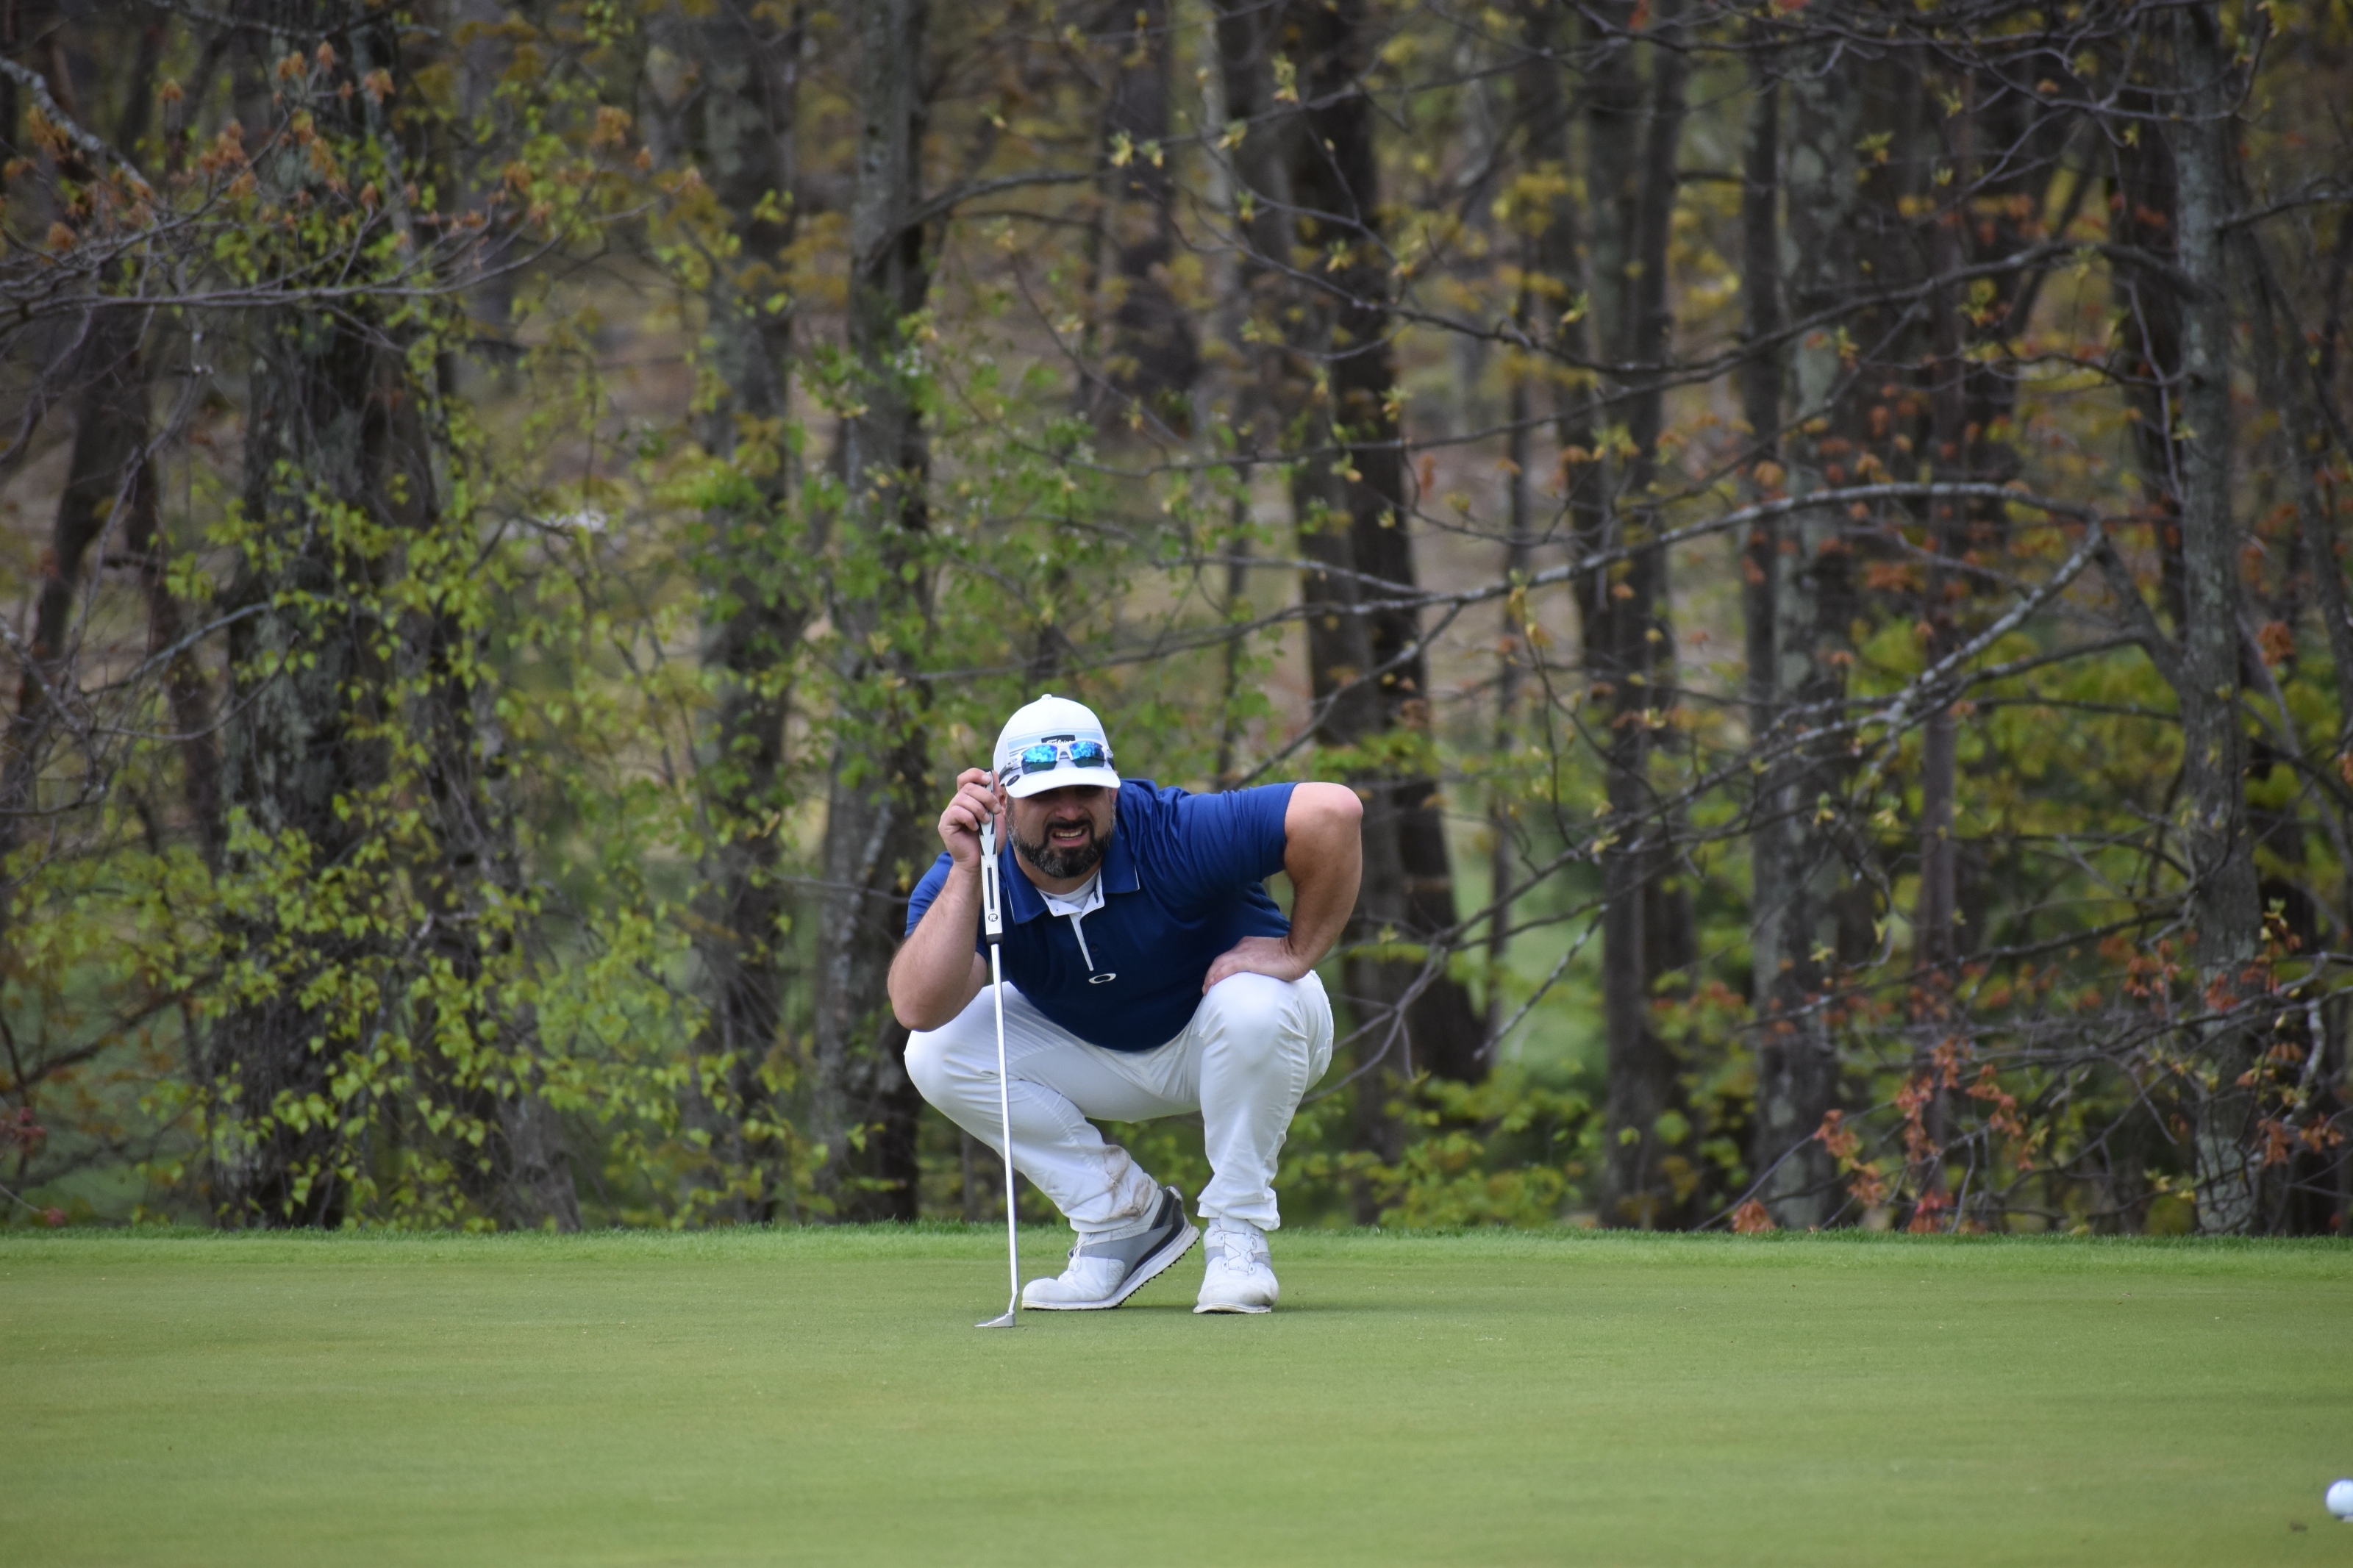 Moore Makes His Amateur Golf Return by Earning Top Seed in Mid-Amateur Match Play